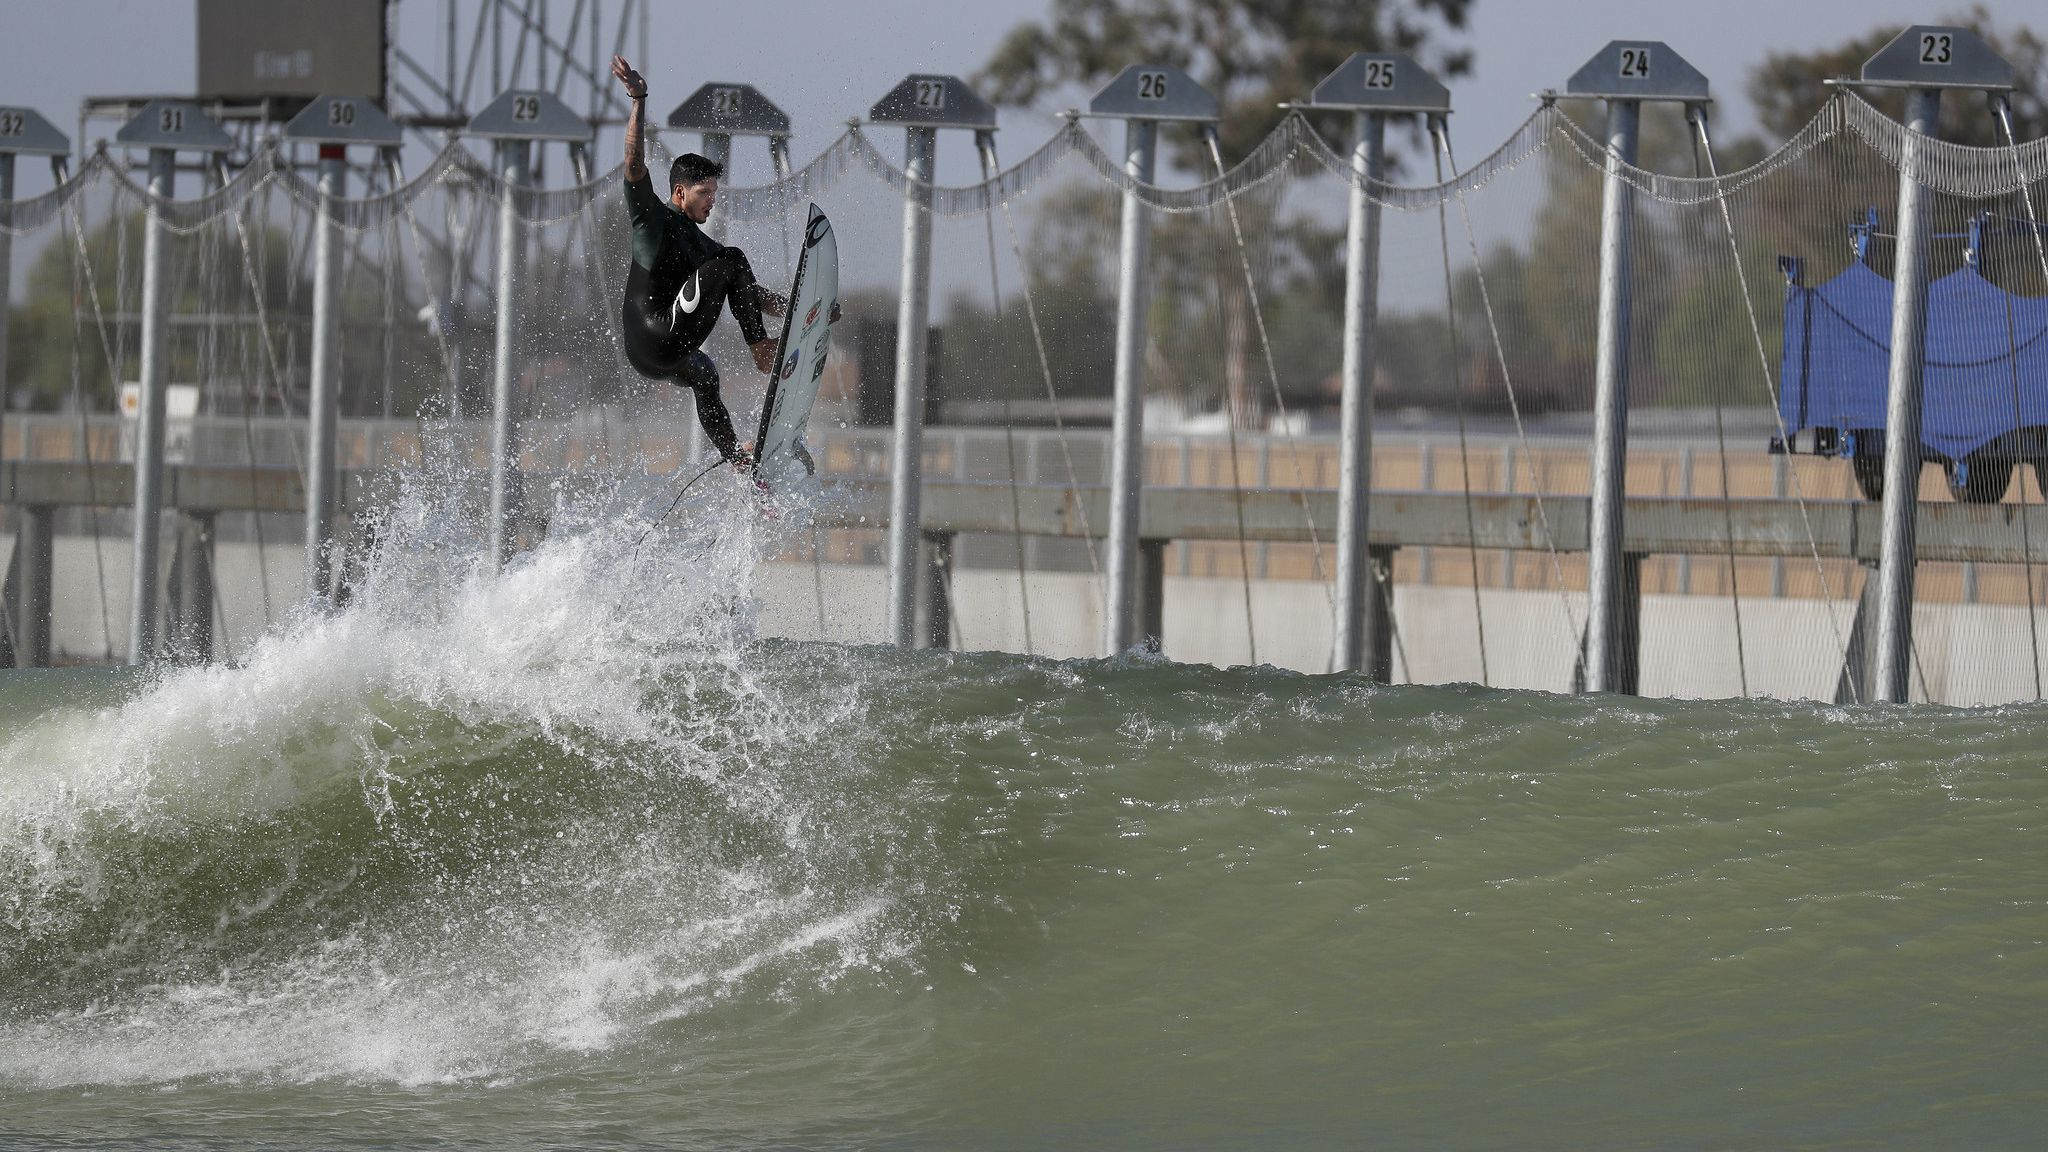 LEMOORE, CALIF. — THURSDAY, MAY 3, 2018: While riding the left, Gabriel Medina, of Brazil, does a